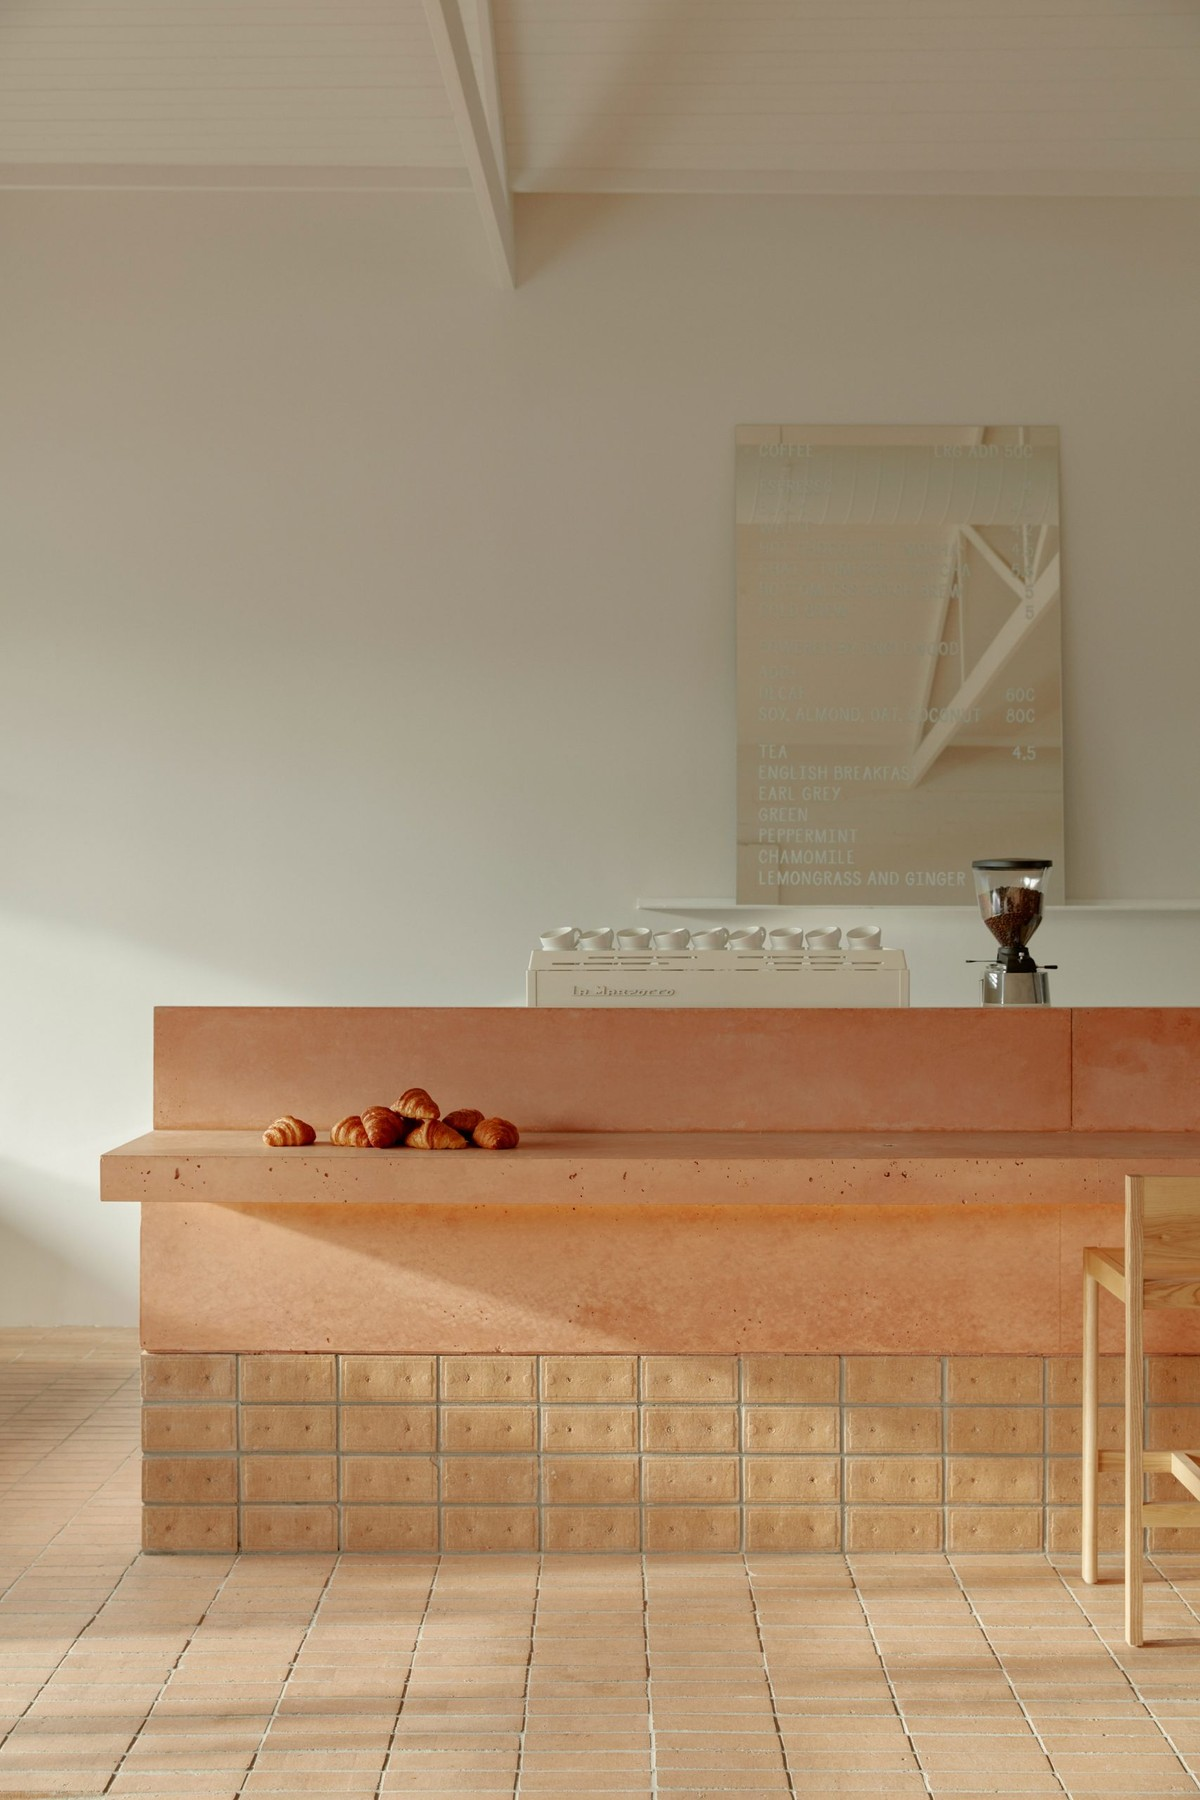 prior-cafe-interiors-melbourne-ritz-ghougassian_dezeen_2364_col_1-scaled.jpg